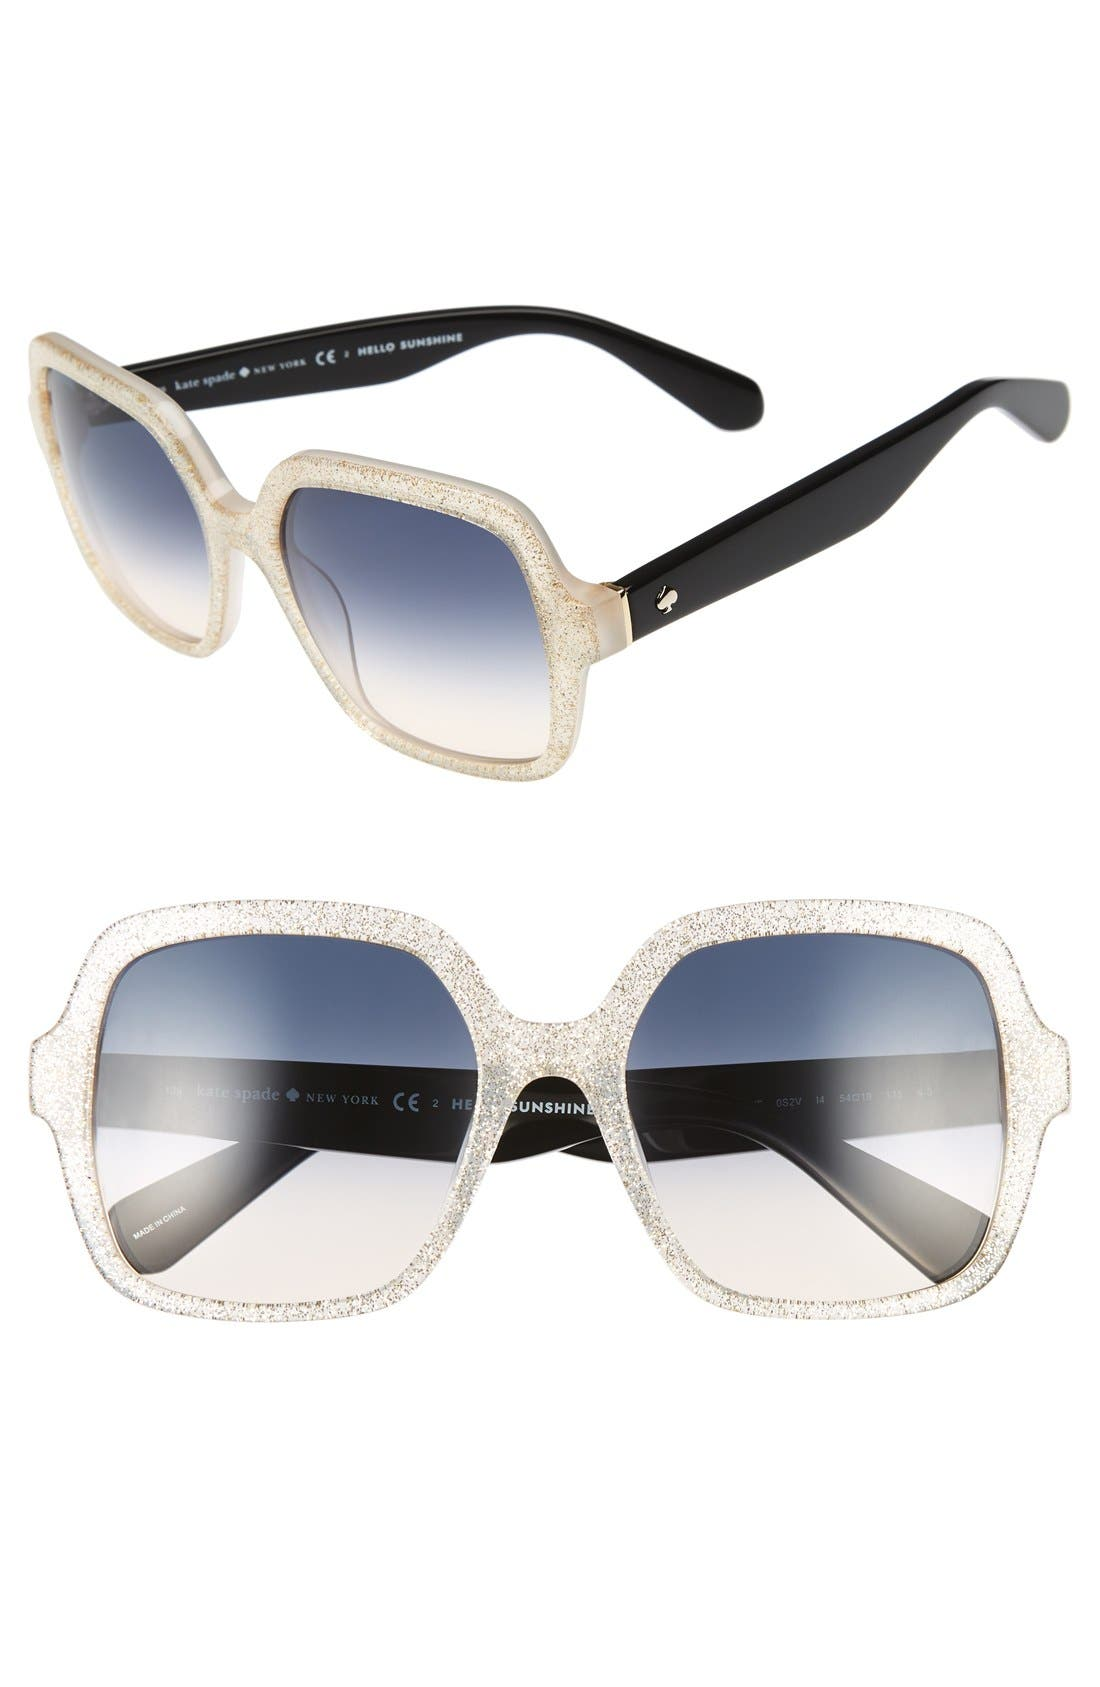 KATE SPADE NEW YORK katels 54mm sunglasses